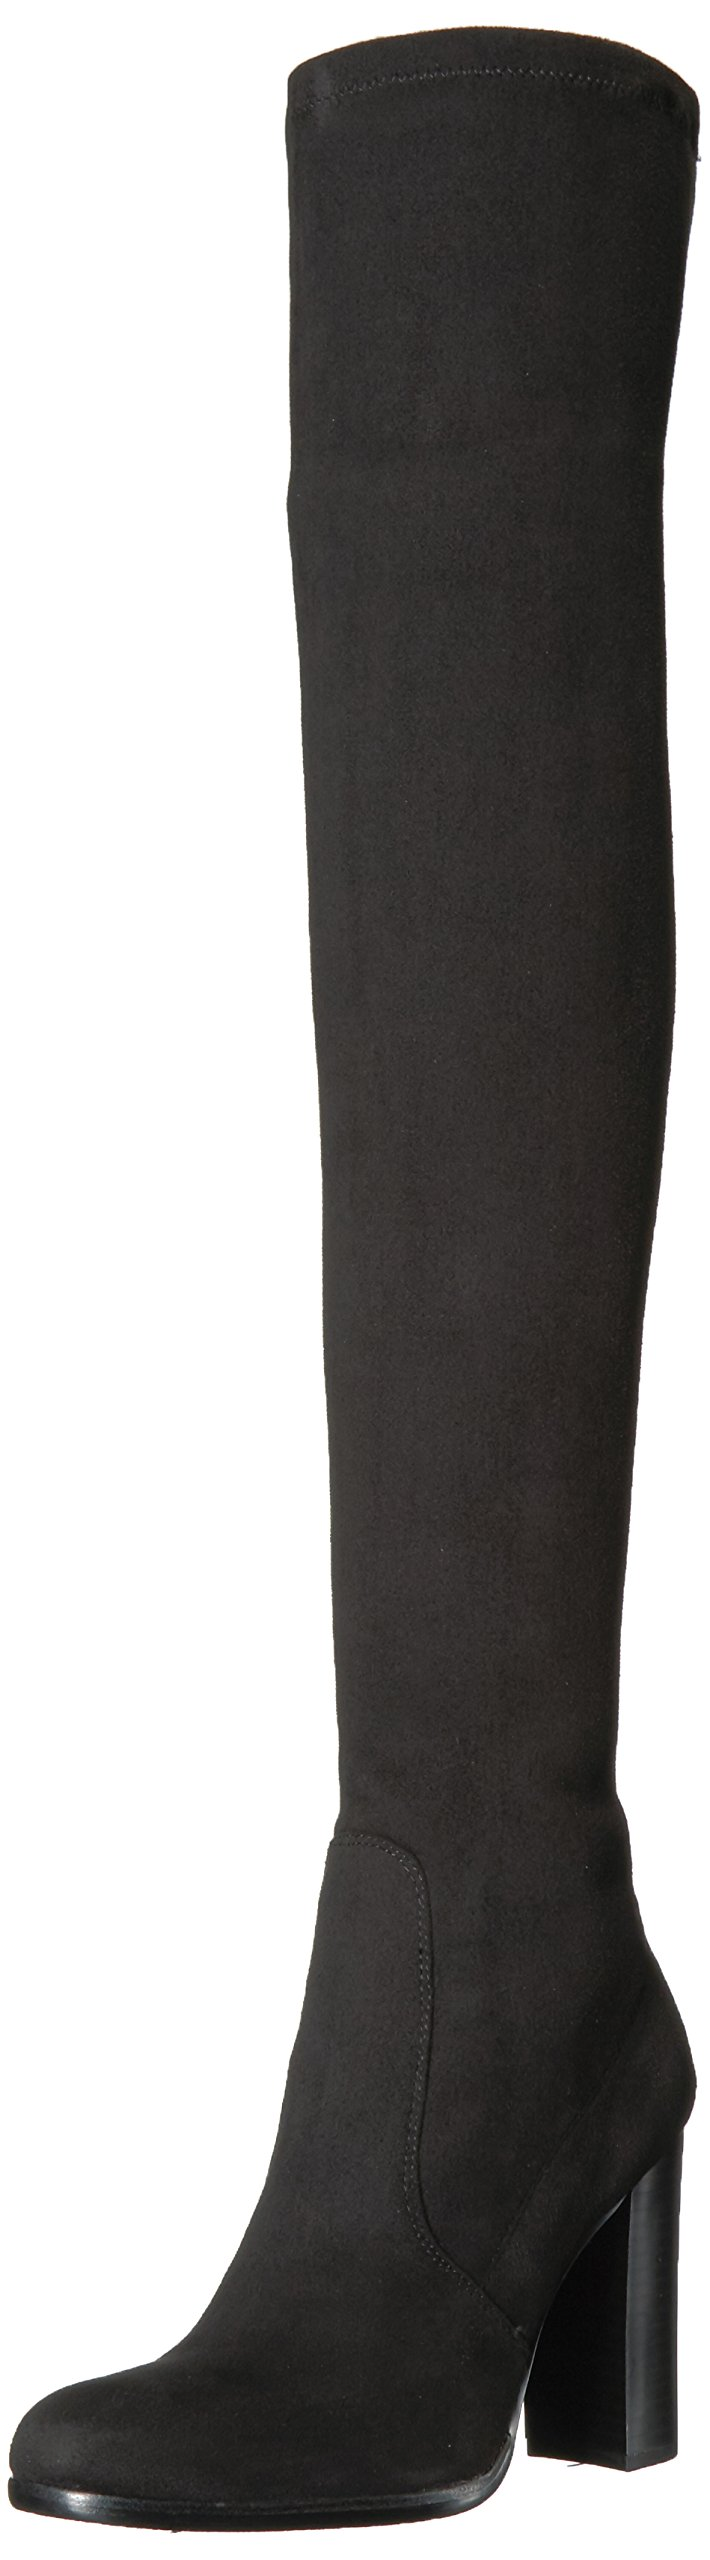 Sam Edelman Women's Vena 2 Over The Knee Boot, Black, 9.5 Medium US